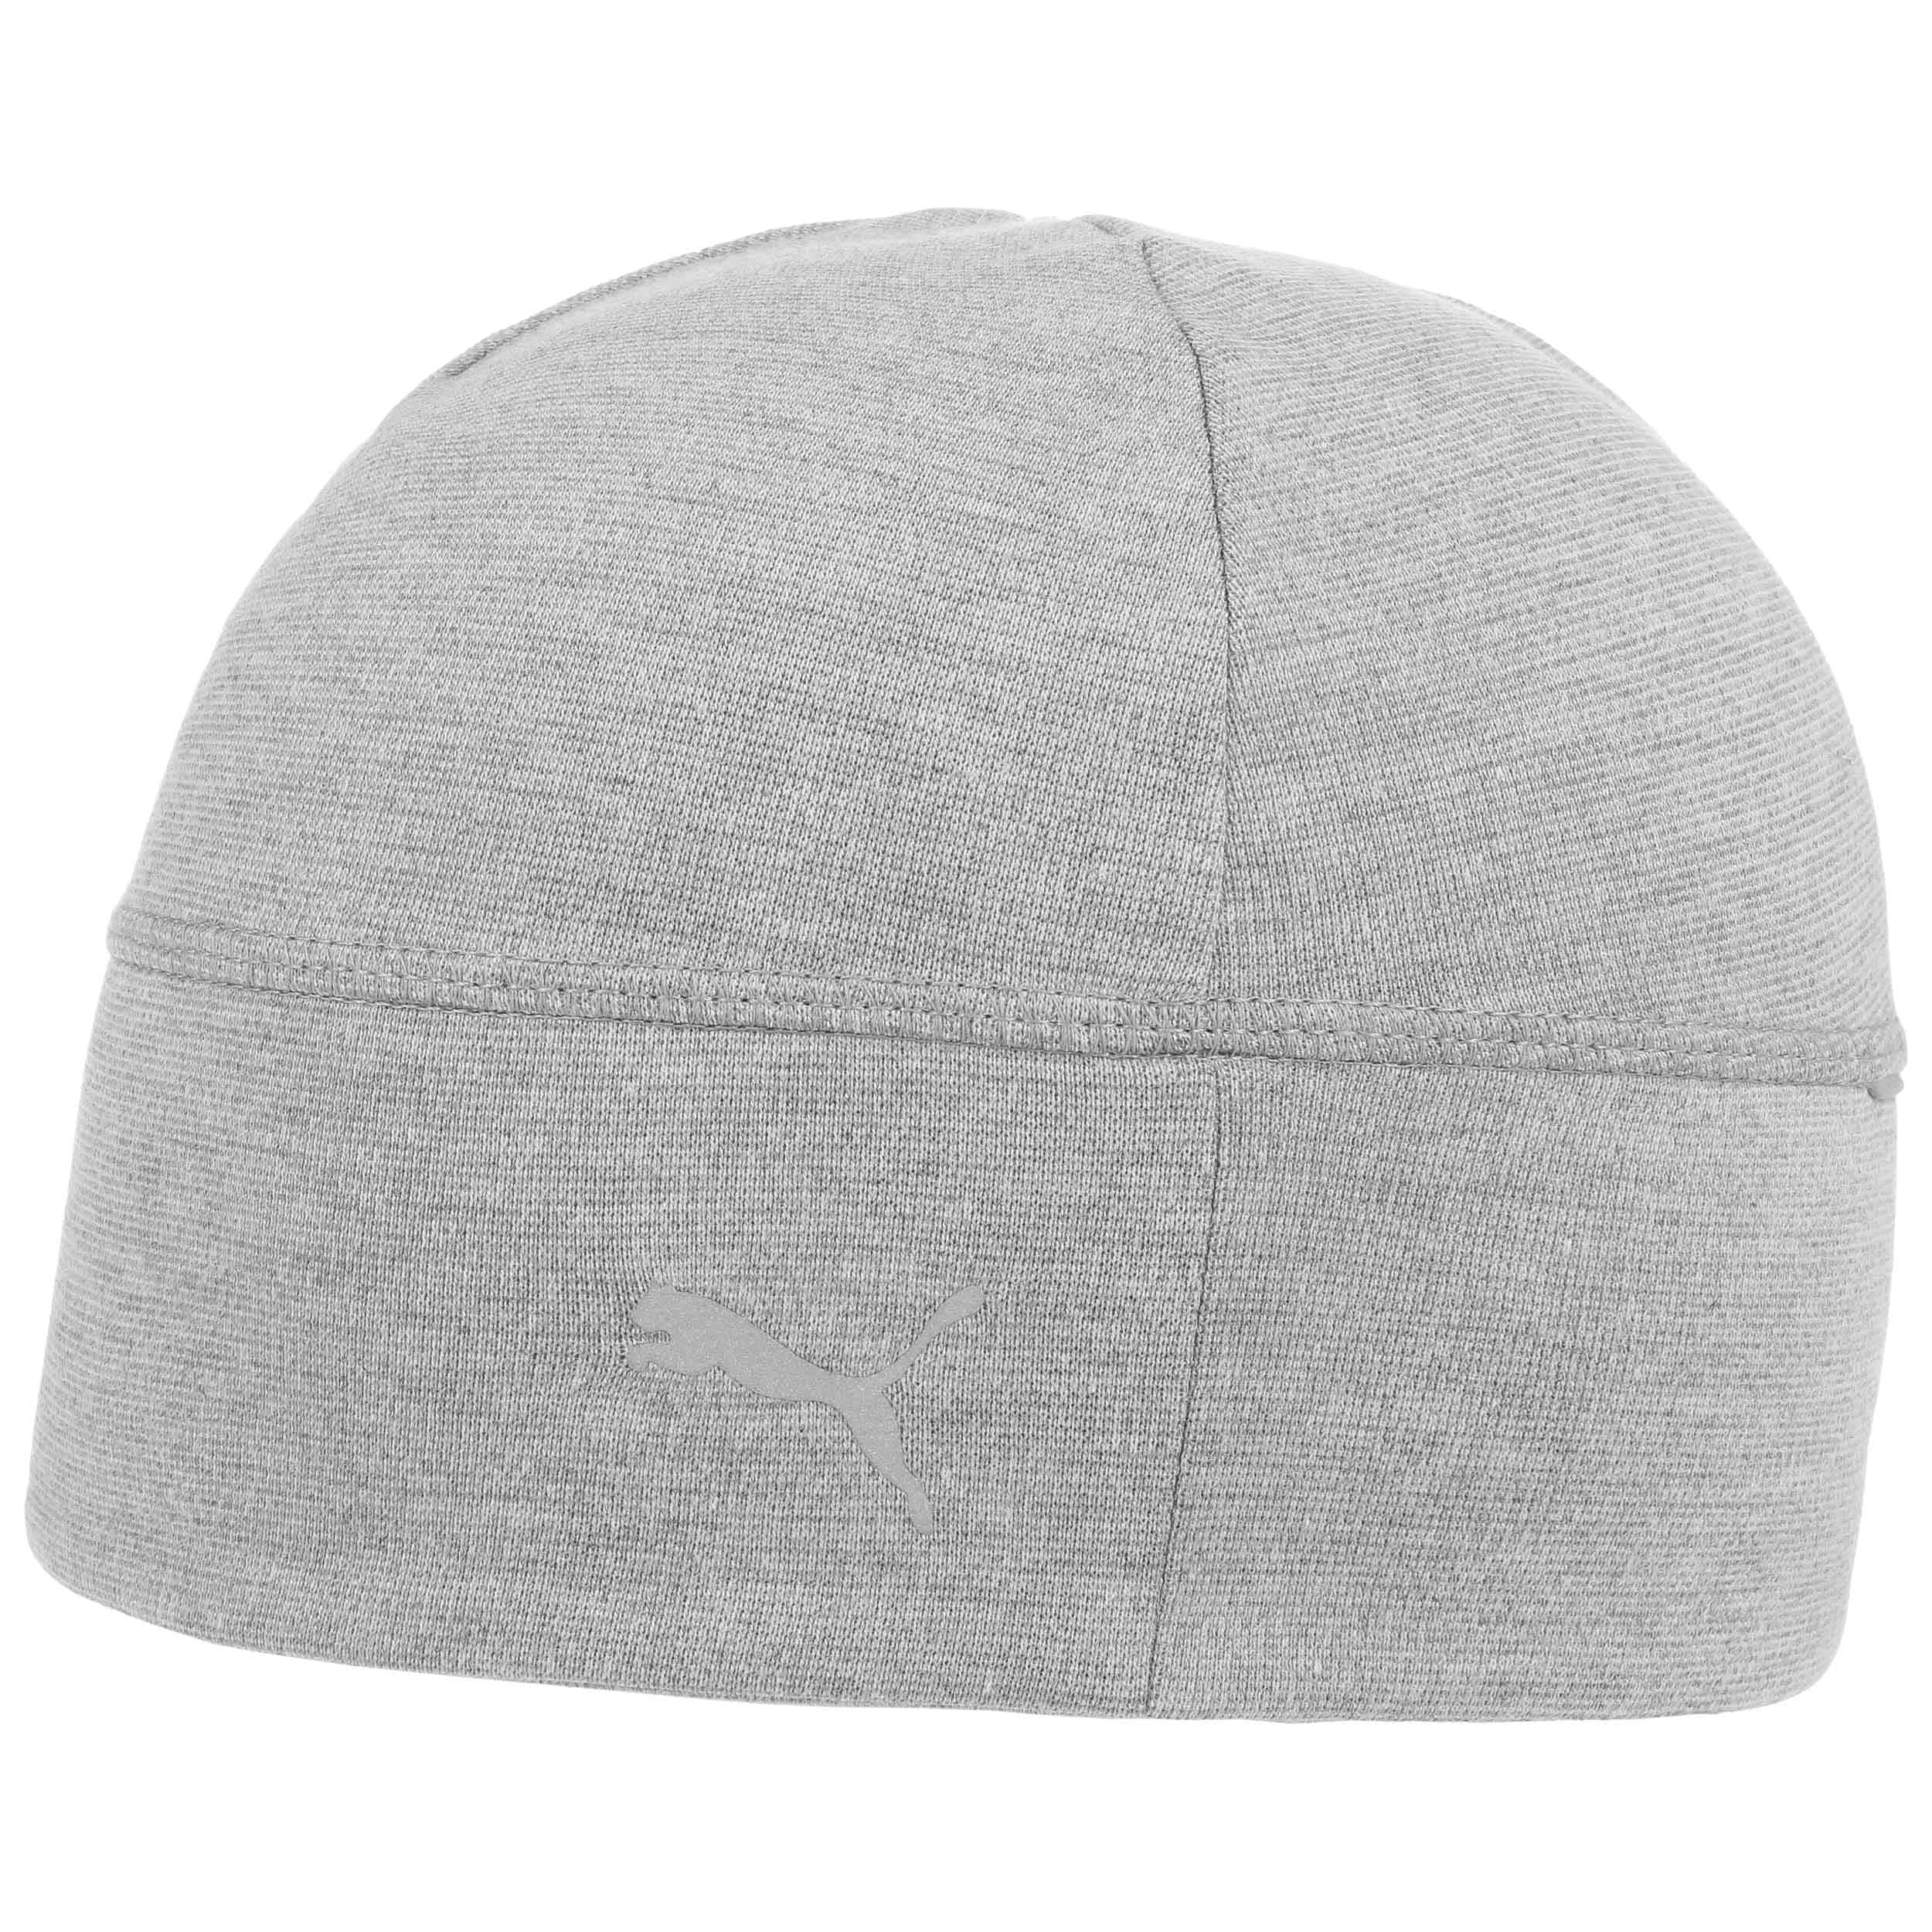 ... Reflective Running Beanie Hat by PUMA - grey-mottled 3 6e54c6c808a